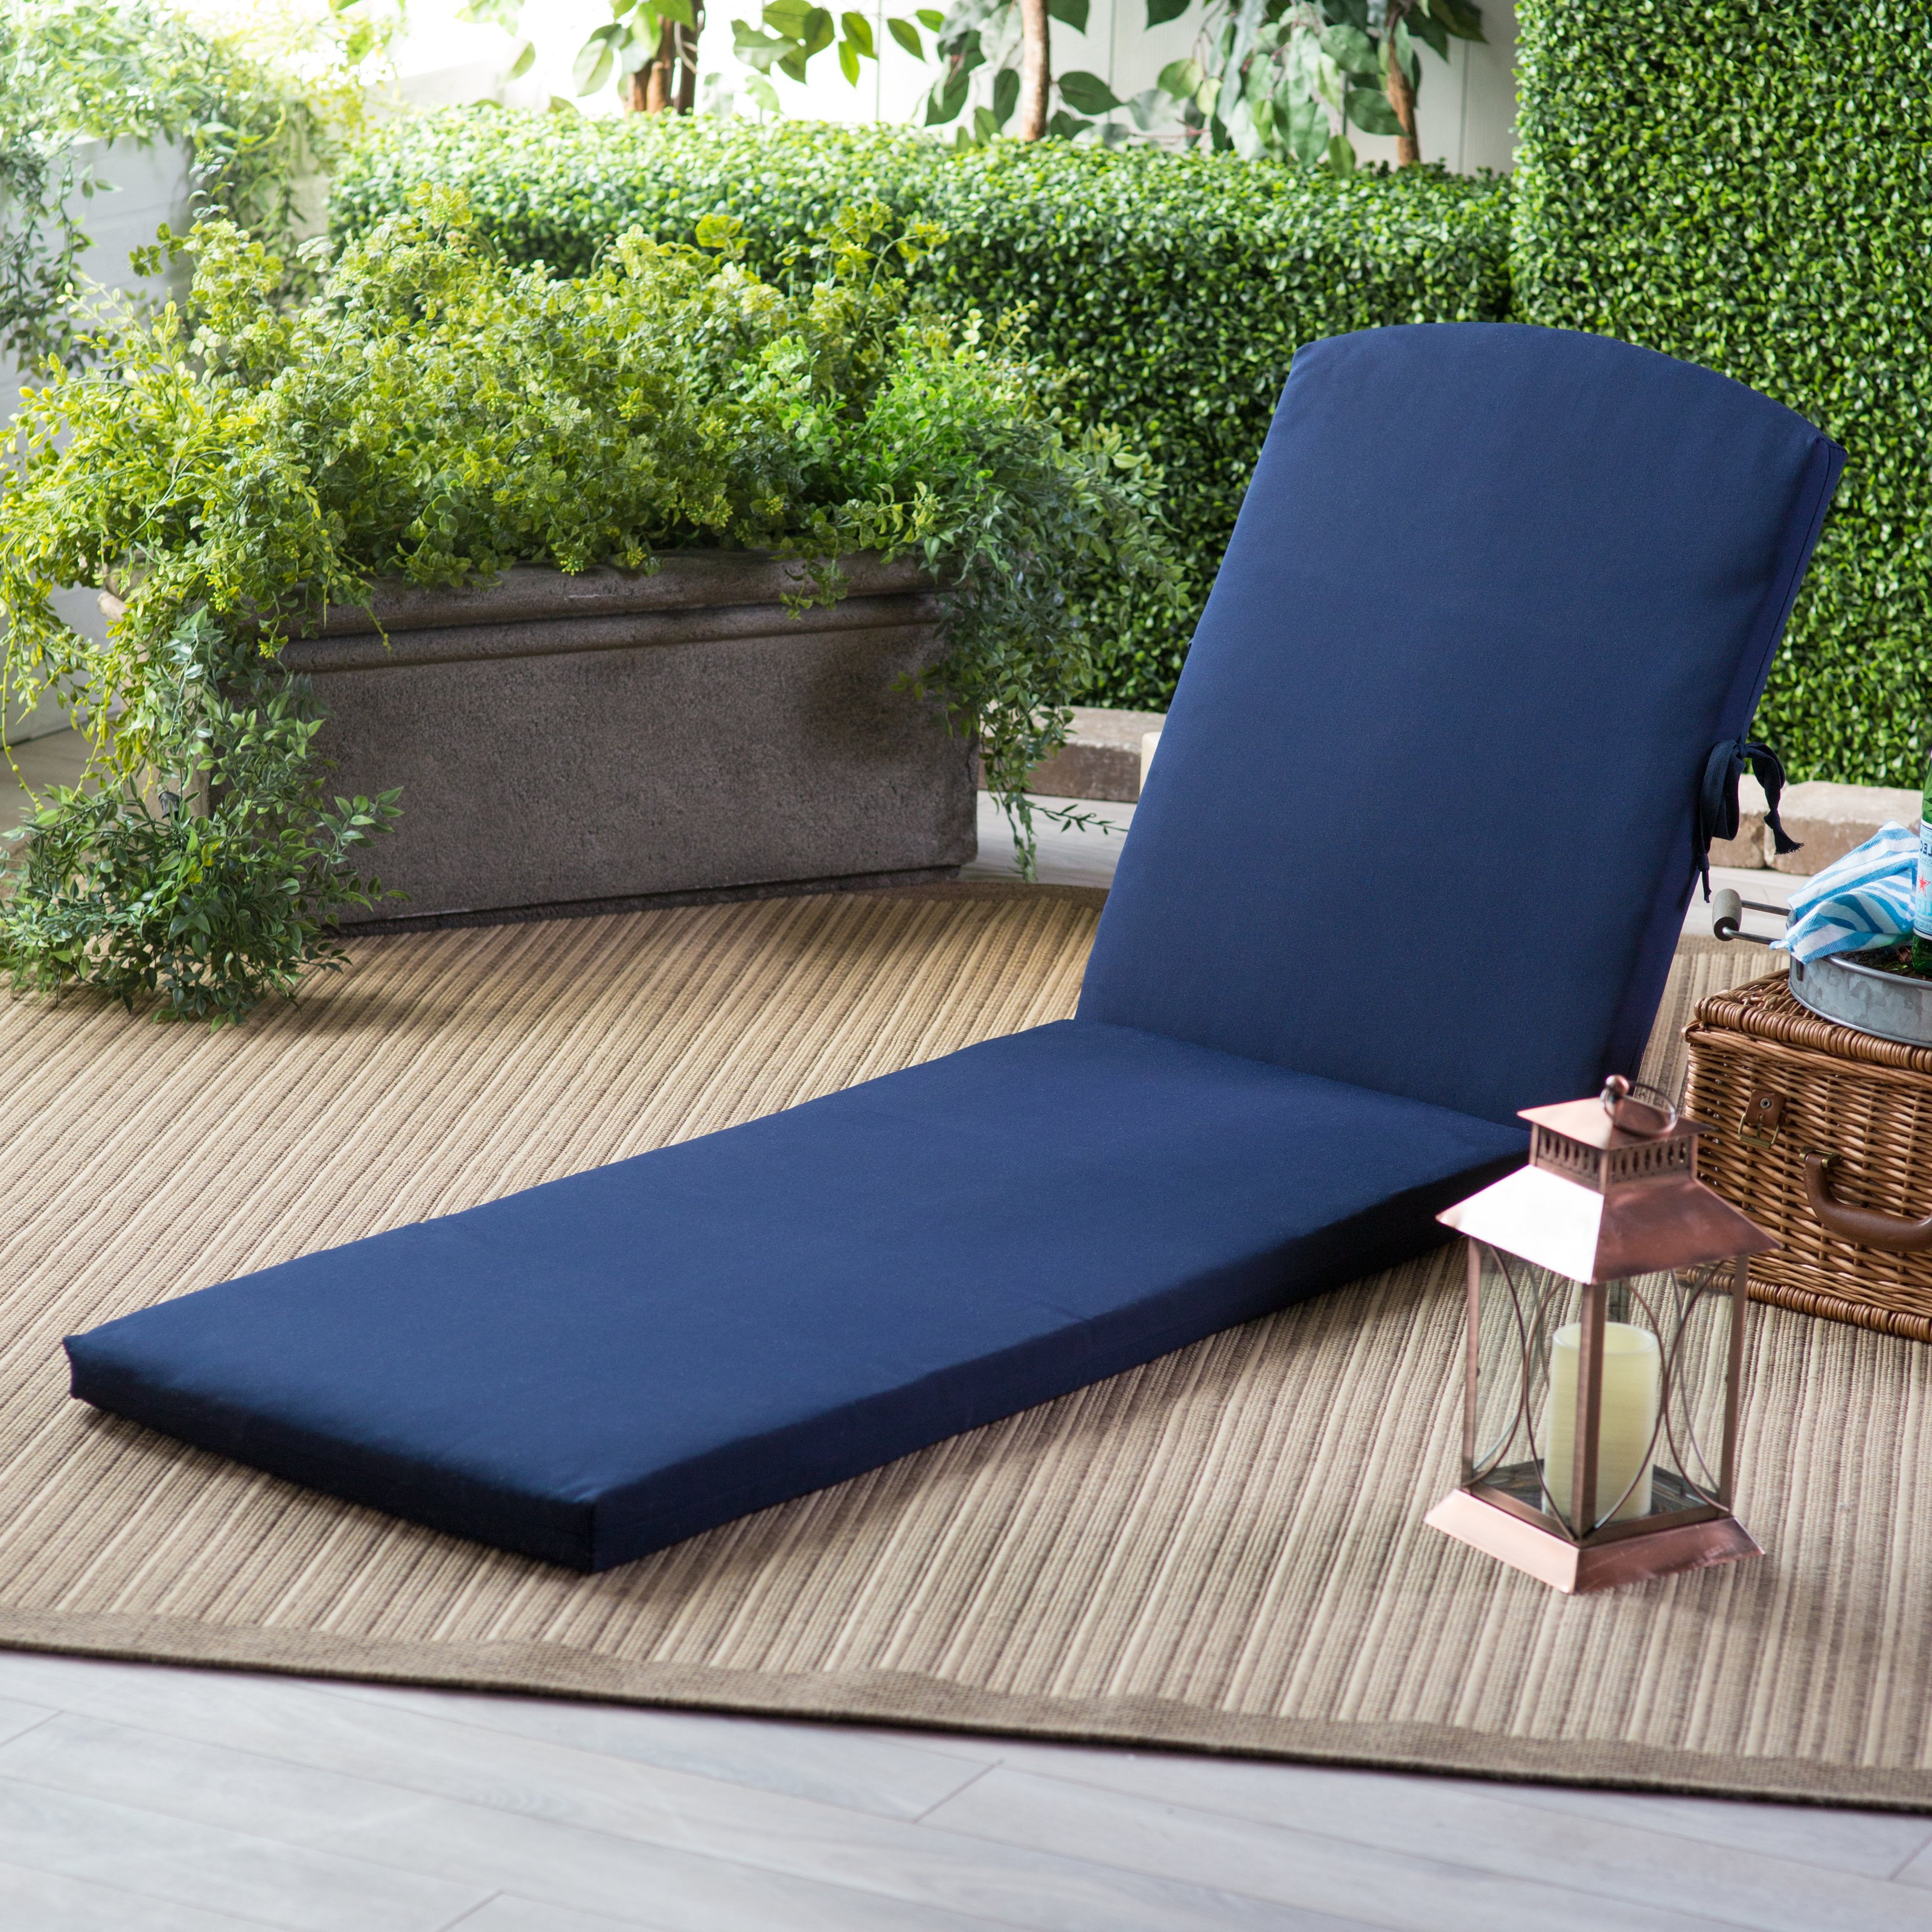 Chaise Lounge Chairs In White With Navy Cushions Pertaining To Most Up To Date Decorating: Comfortable Sunbrella Replacement Cushions For (View 19 of 25)